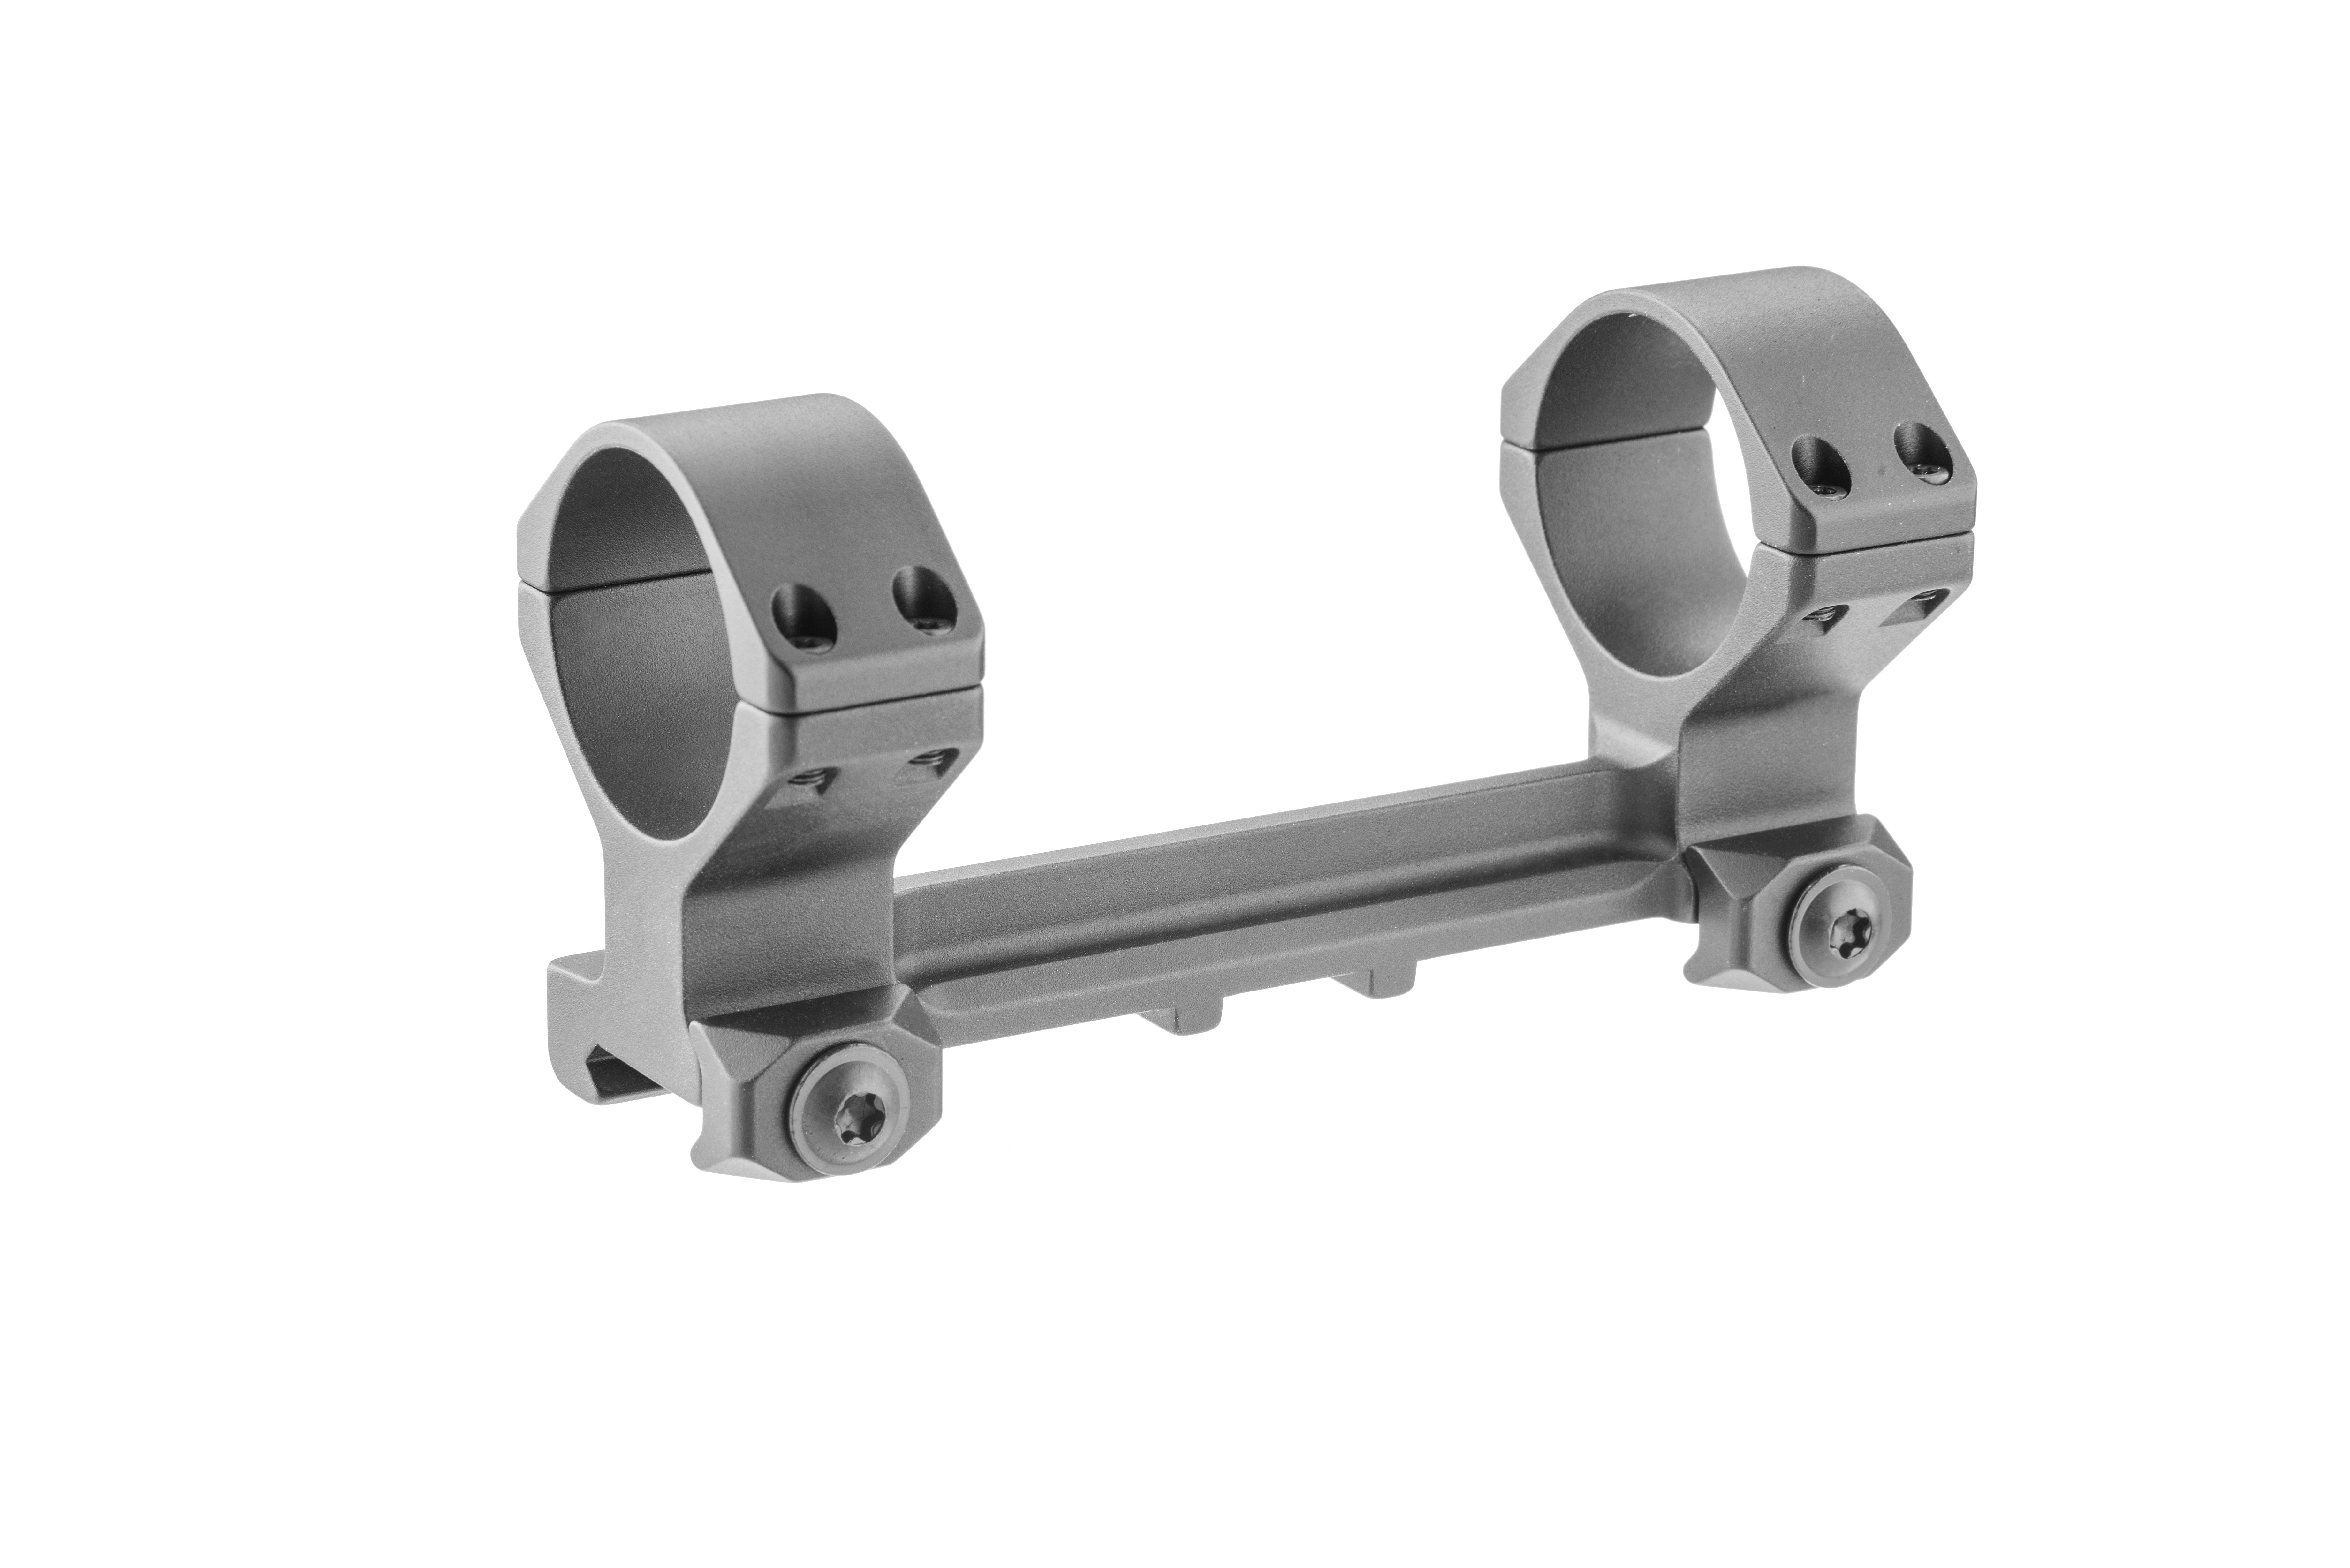 ERATAC UltraLight II 34mm Scope Mount